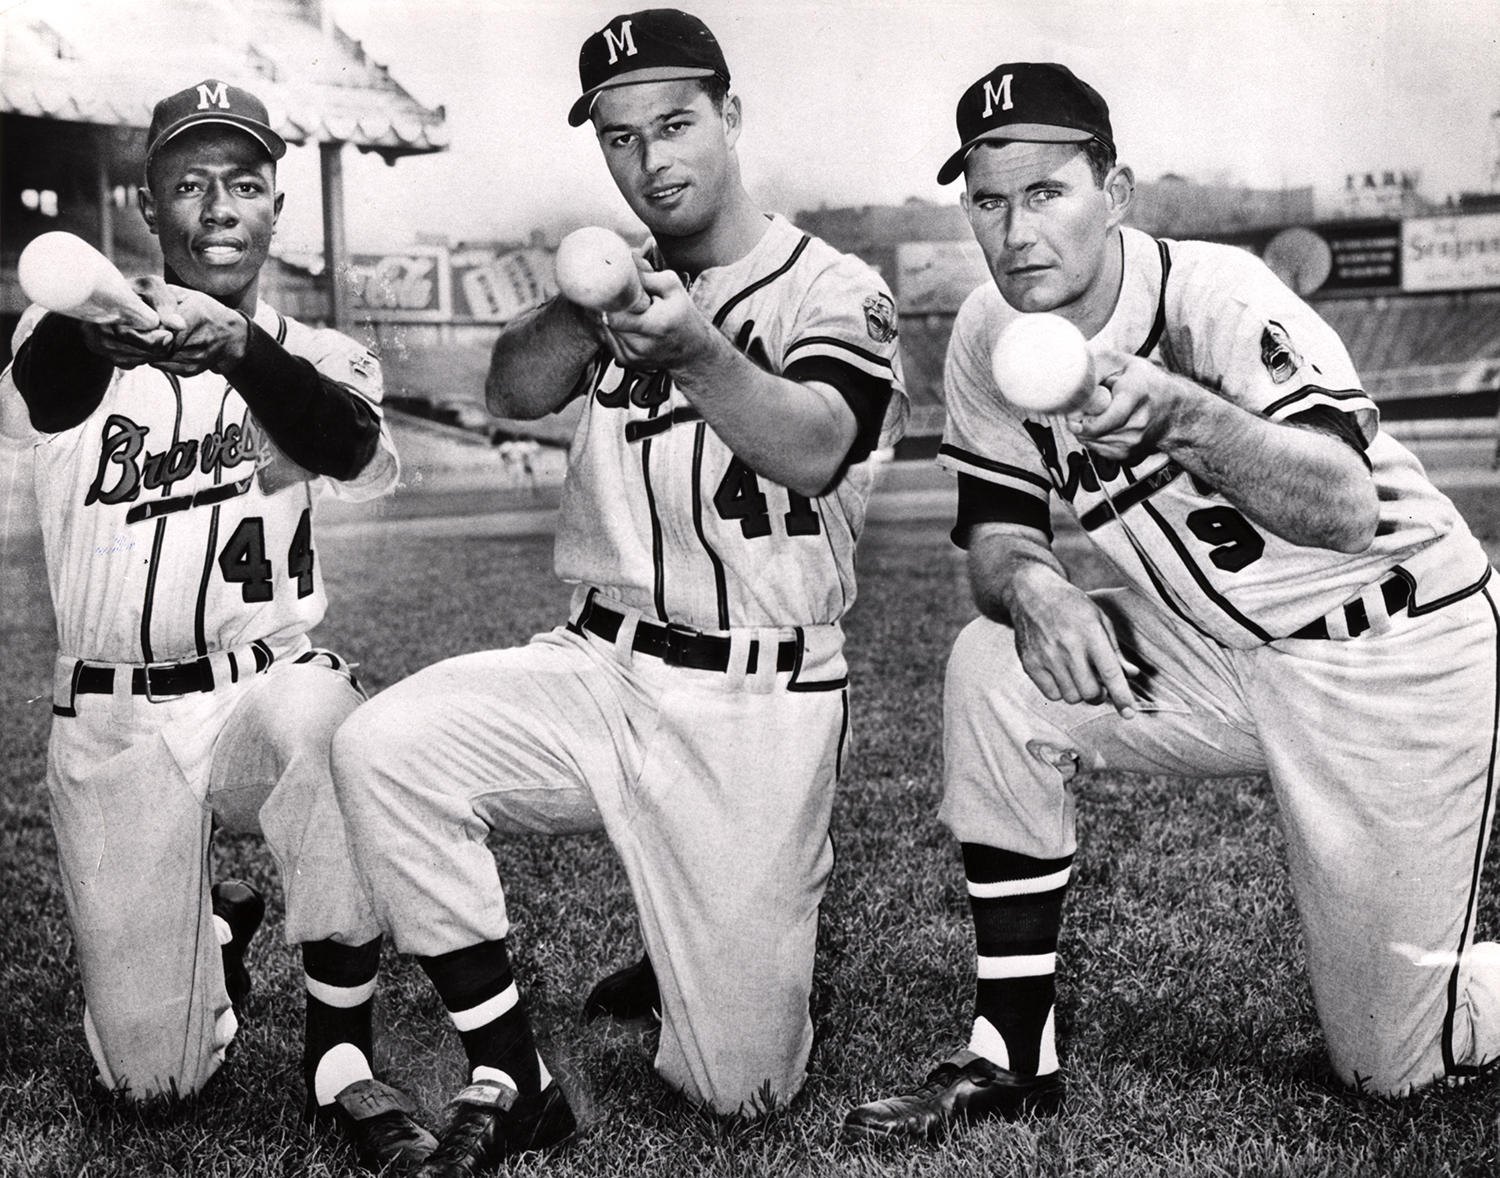 Hank Aaron poses with fellow Hall of Famer Eddie Mathews (center), and Braves first baseman Joe Adcock, while playing for the Milwaukee Braves. (National Baseball Hall of Fame)